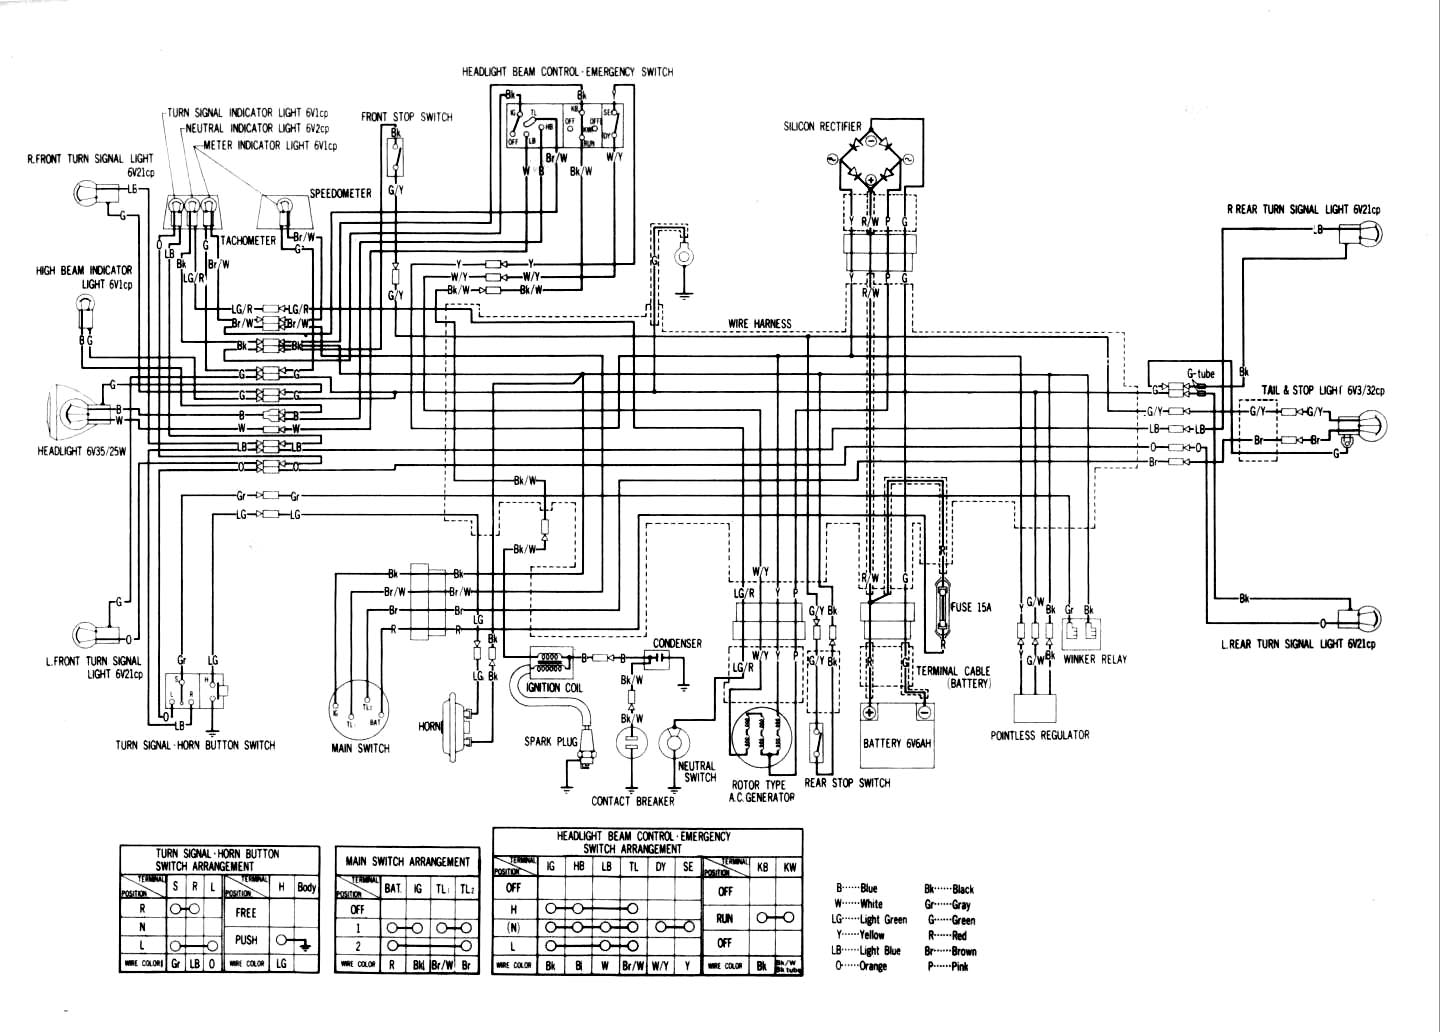 i need a wiring diagram for a 1974 xl70 honda